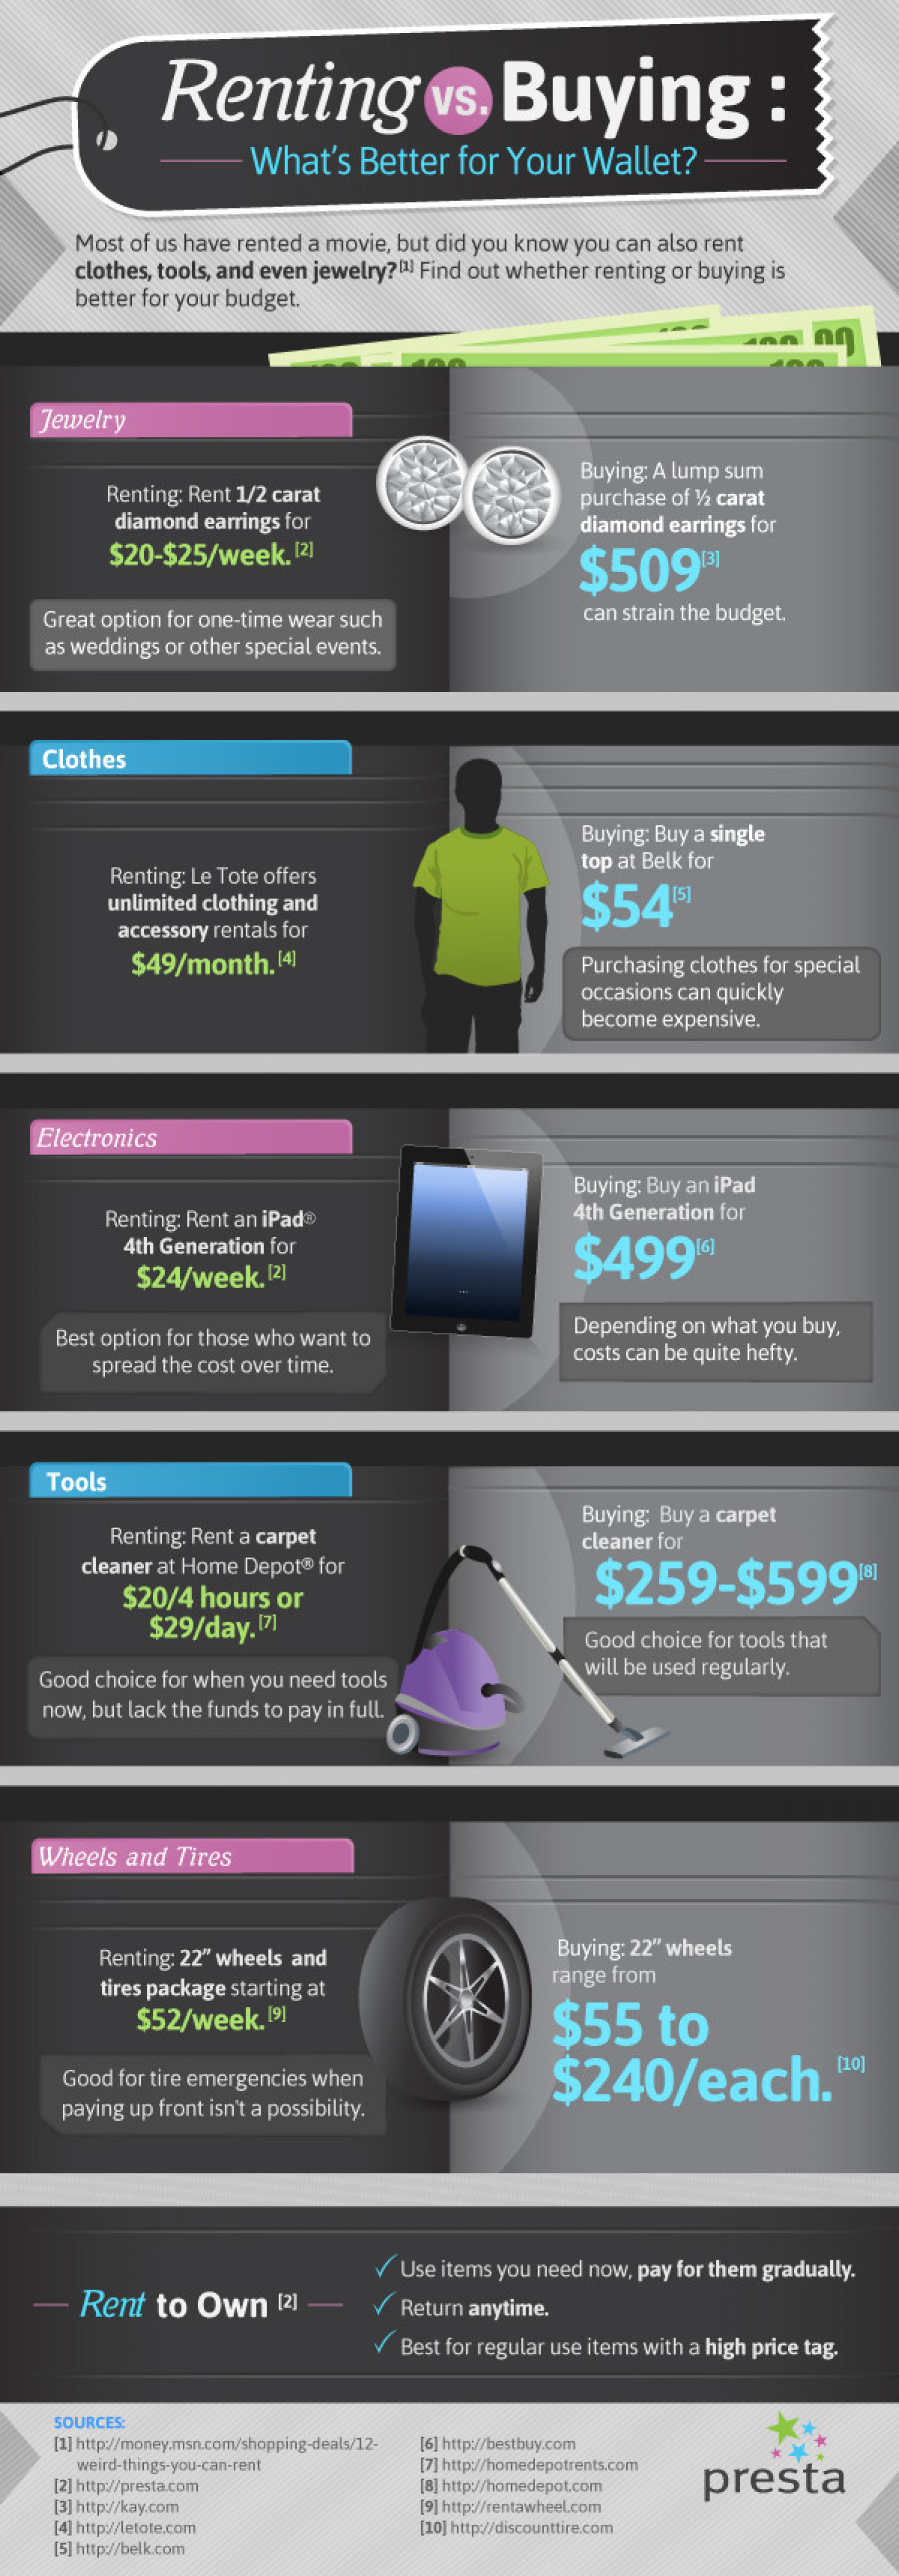 Renting vs buying: What's better for your wallet? Infographic